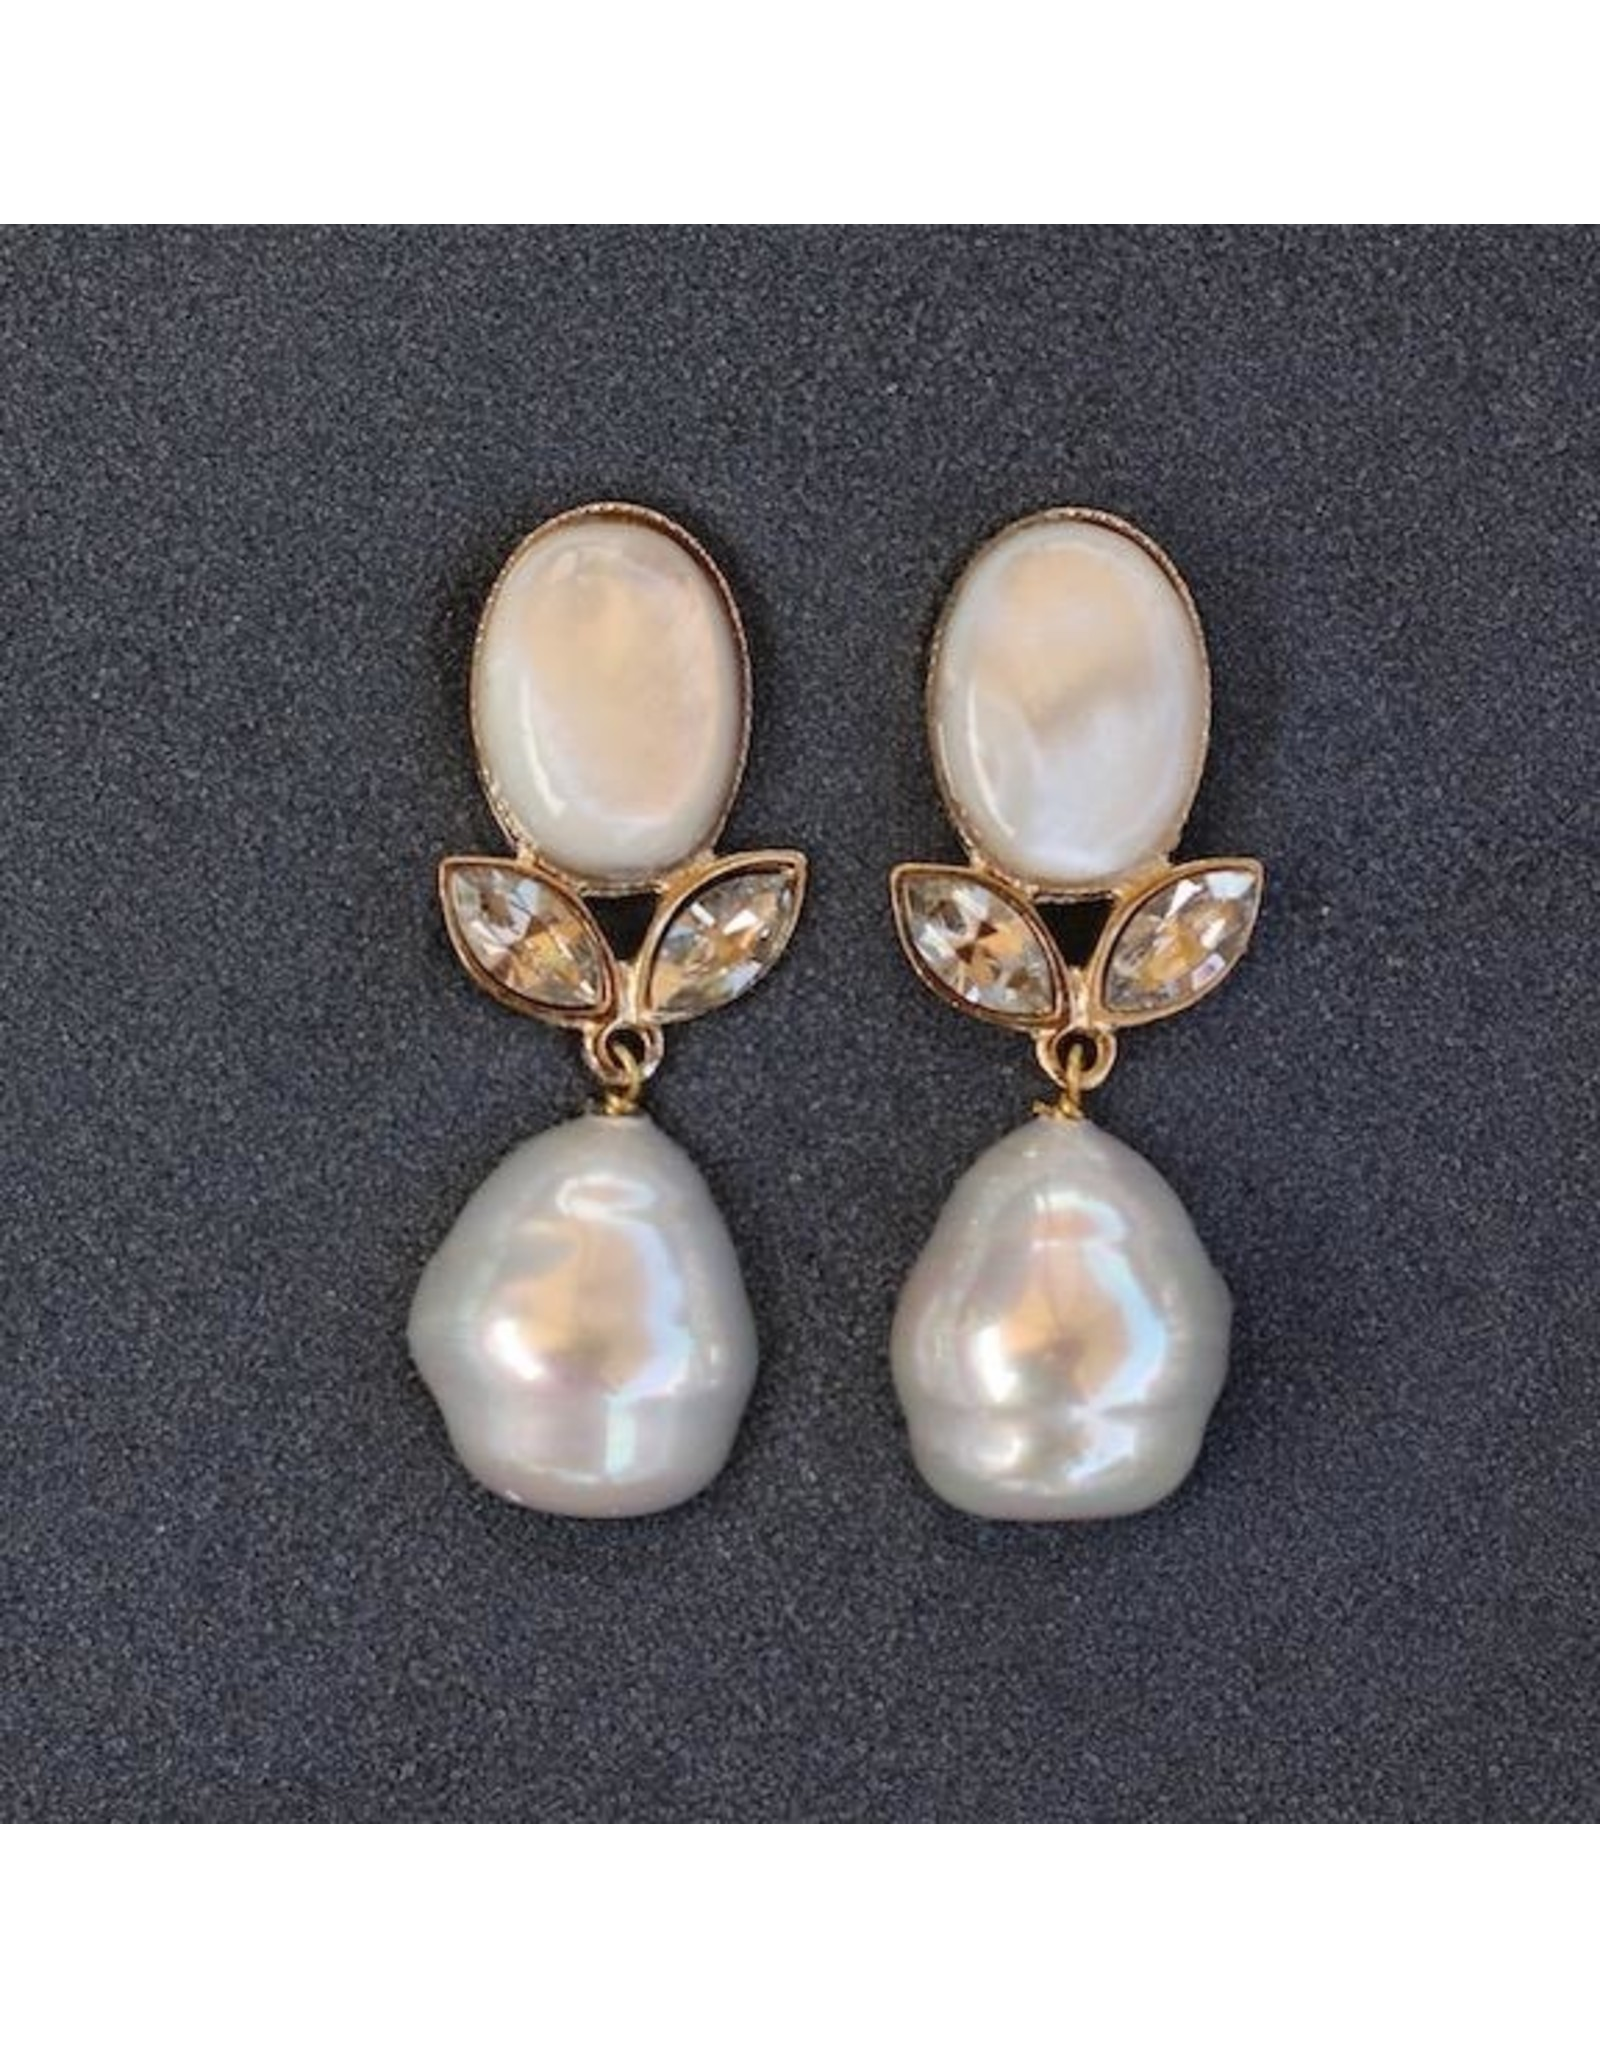 Philippe Ferrandis VCExclusives: Linda White Pearl Pierced